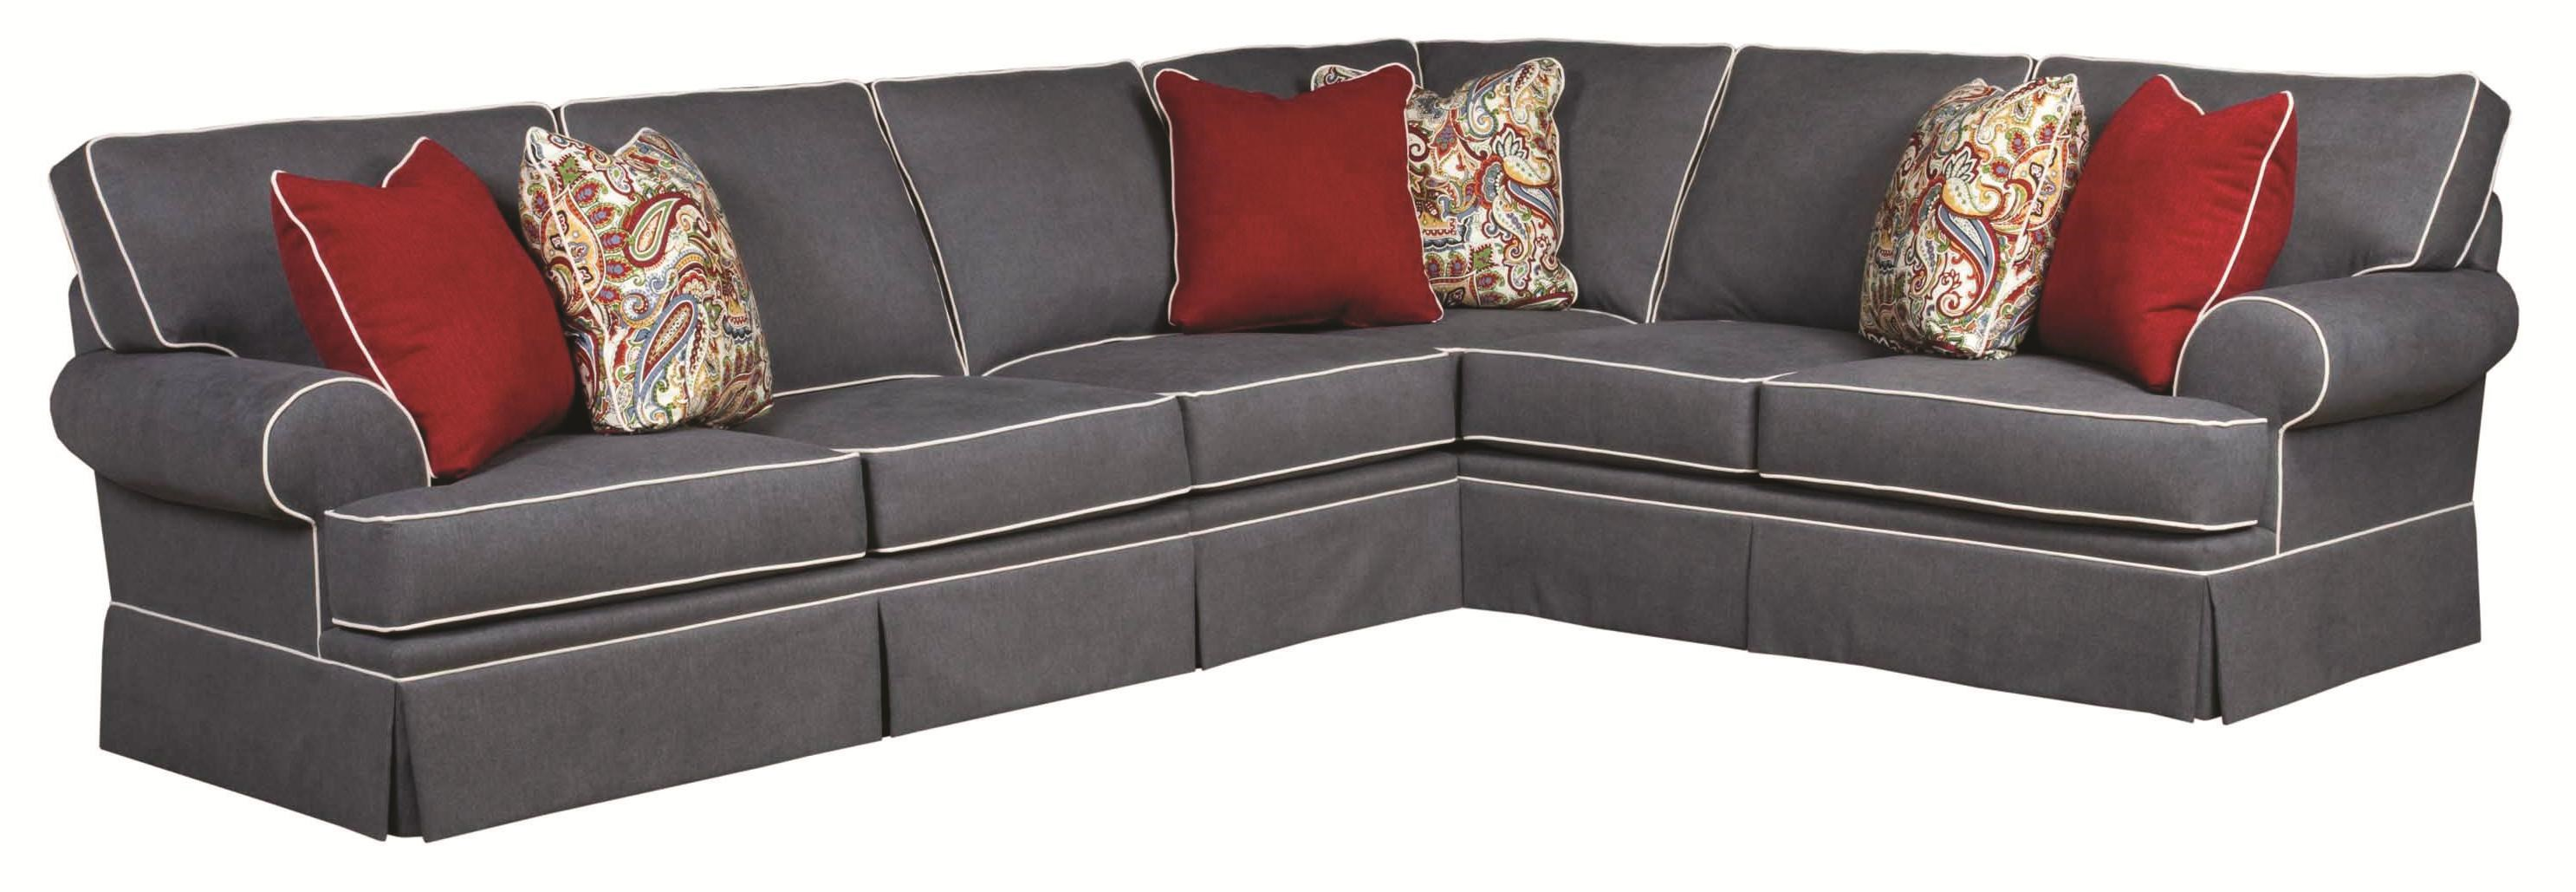 Beau Broyhill Furniture Emily Traditional 3 Piece Sectional Sofa With Skirted  Base